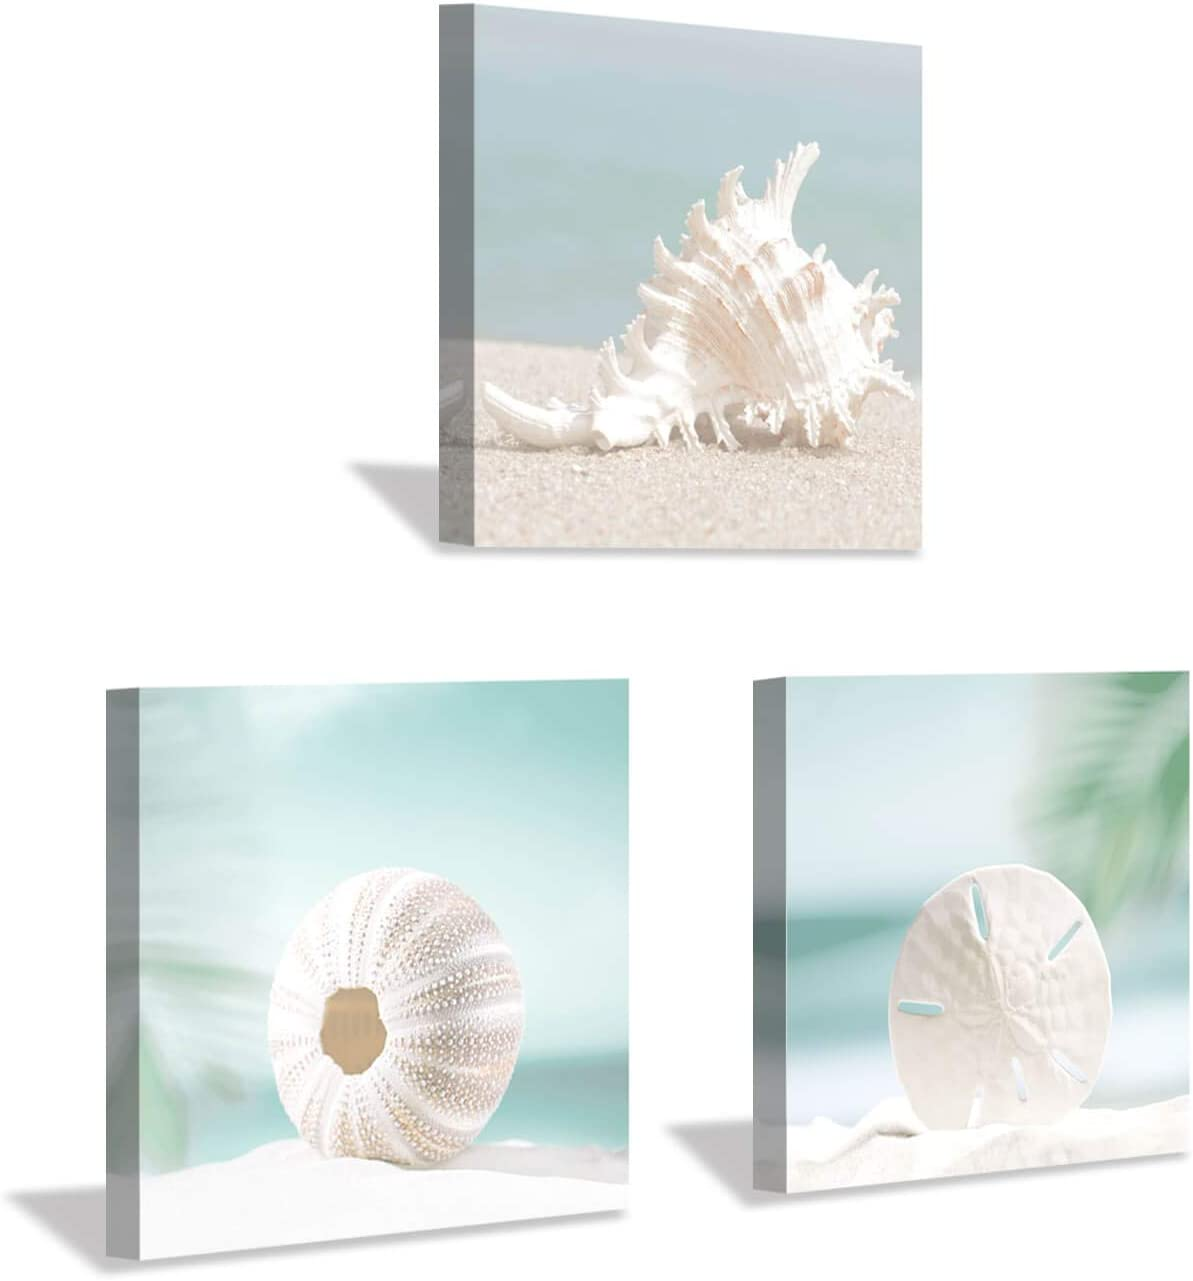 Hardy Gallery Seashells Wall Art Canvas Print: Seashore Scene Artwork Painting for Wall Decor for Hallway (12''x12''x3pcs)